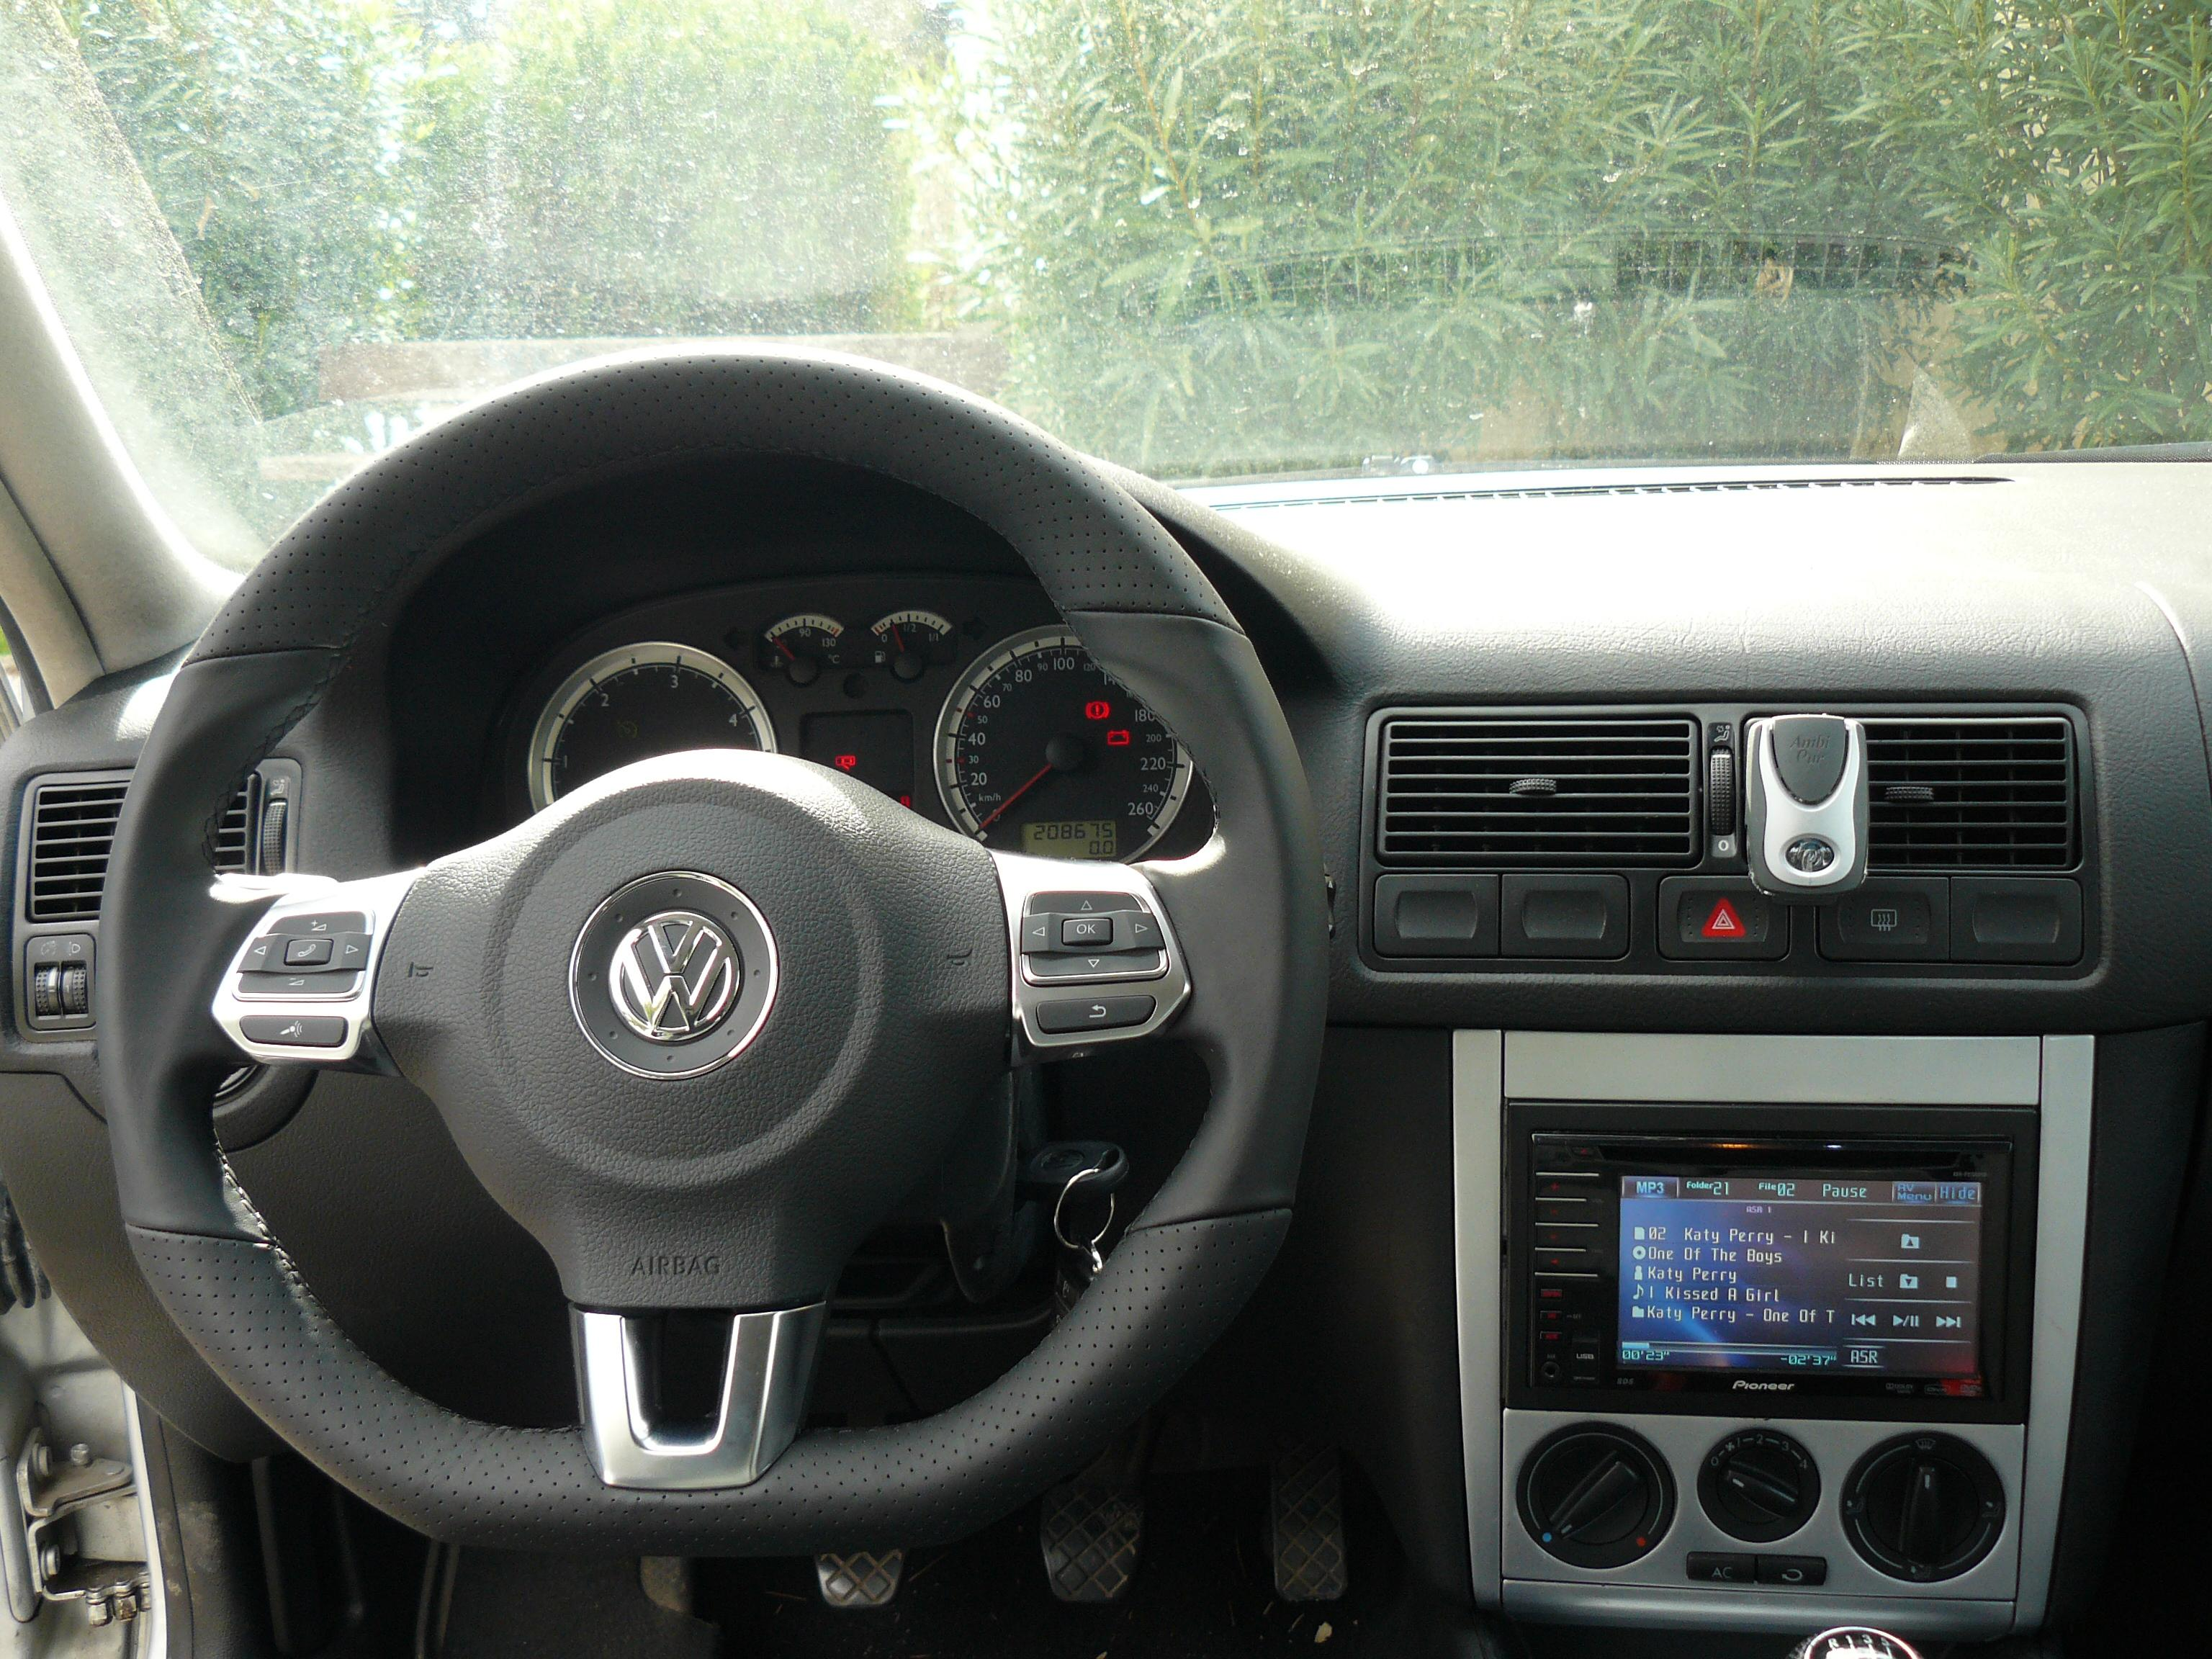 volant golf vi accessoires int rieurs page 4 forum volkswagen golf iv. Black Bedroom Furniture Sets. Home Design Ideas